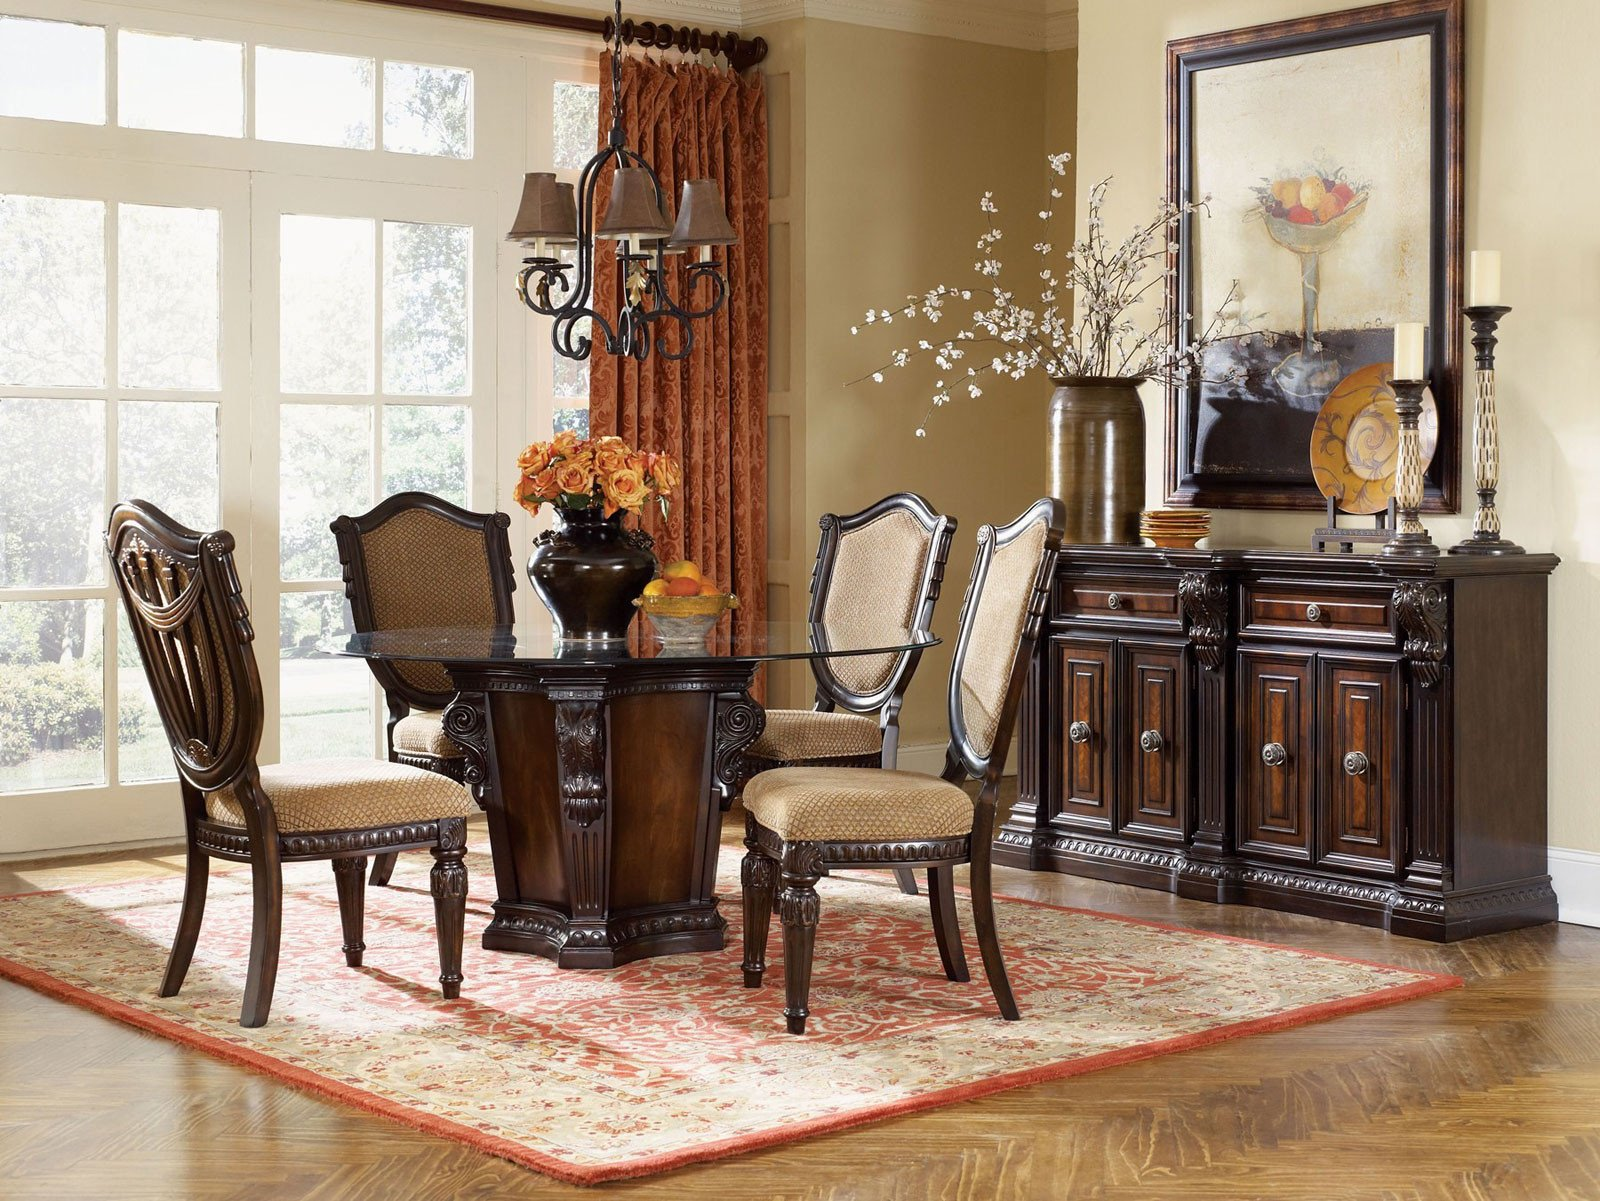 Dining Room Buffet Decor Ideas Beautiful Simple and Functional Dining Room Buffet Amaza Design